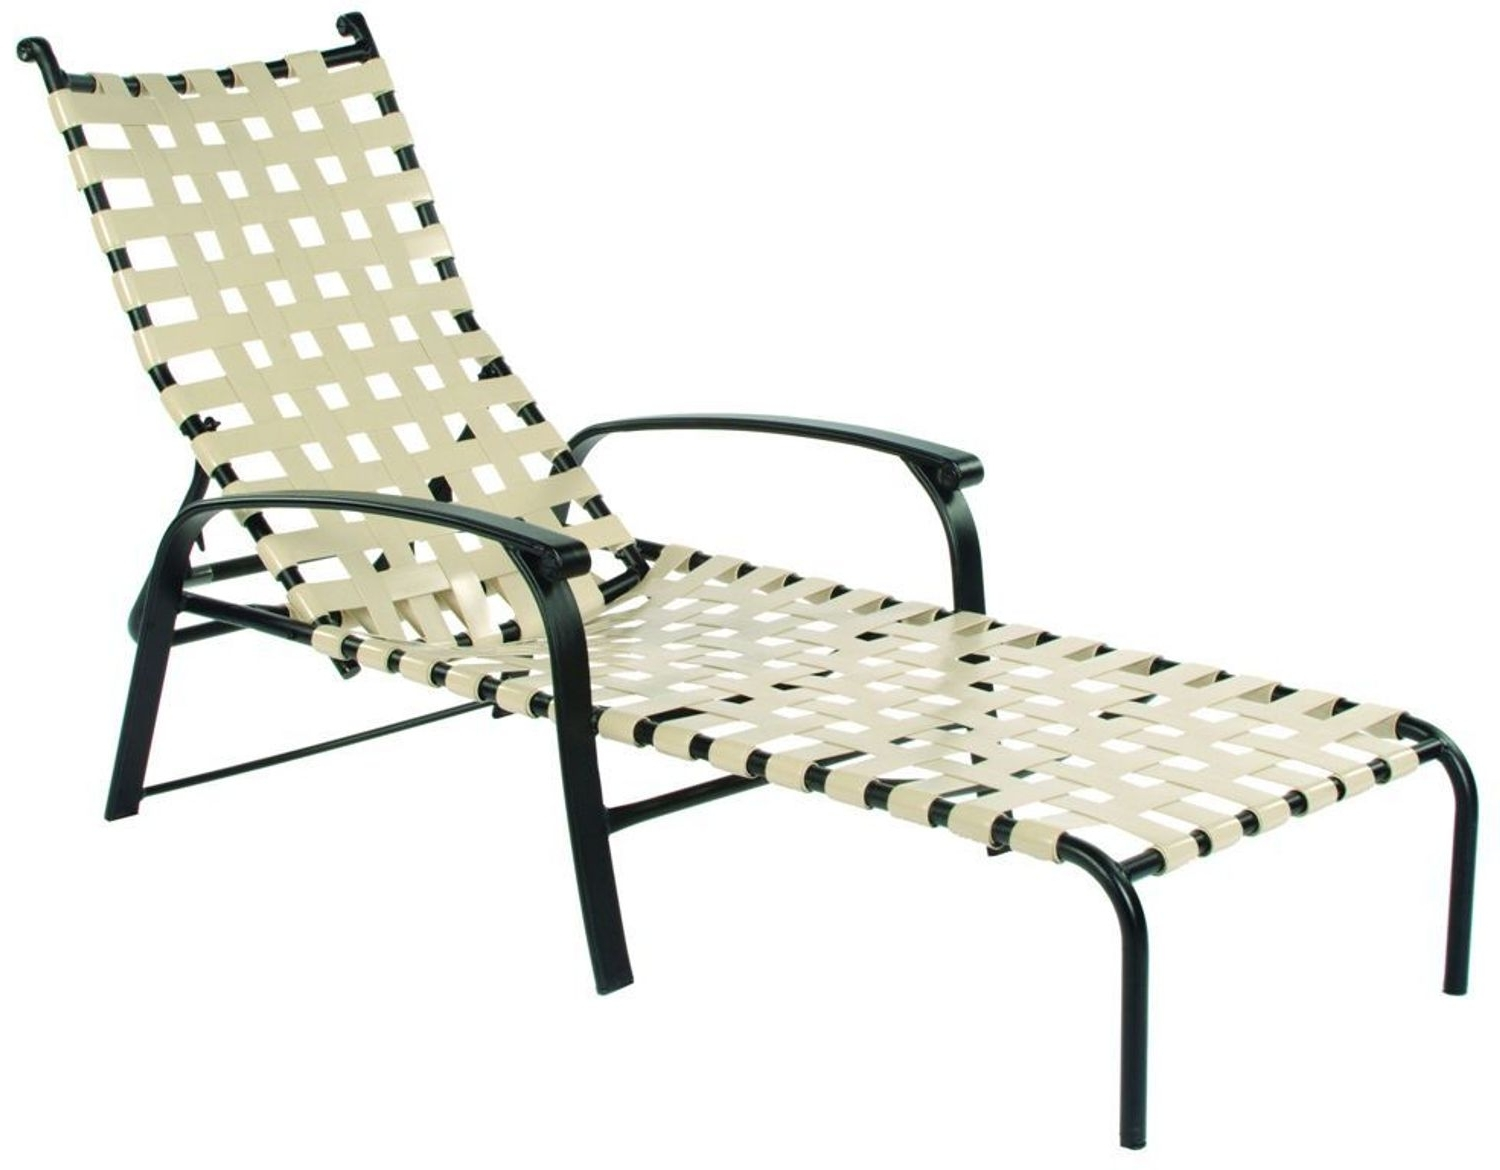 Home Outdoor Decoration With Commercial Grade Outdoor Chaise Lounge Chairs (View 14 of 15)